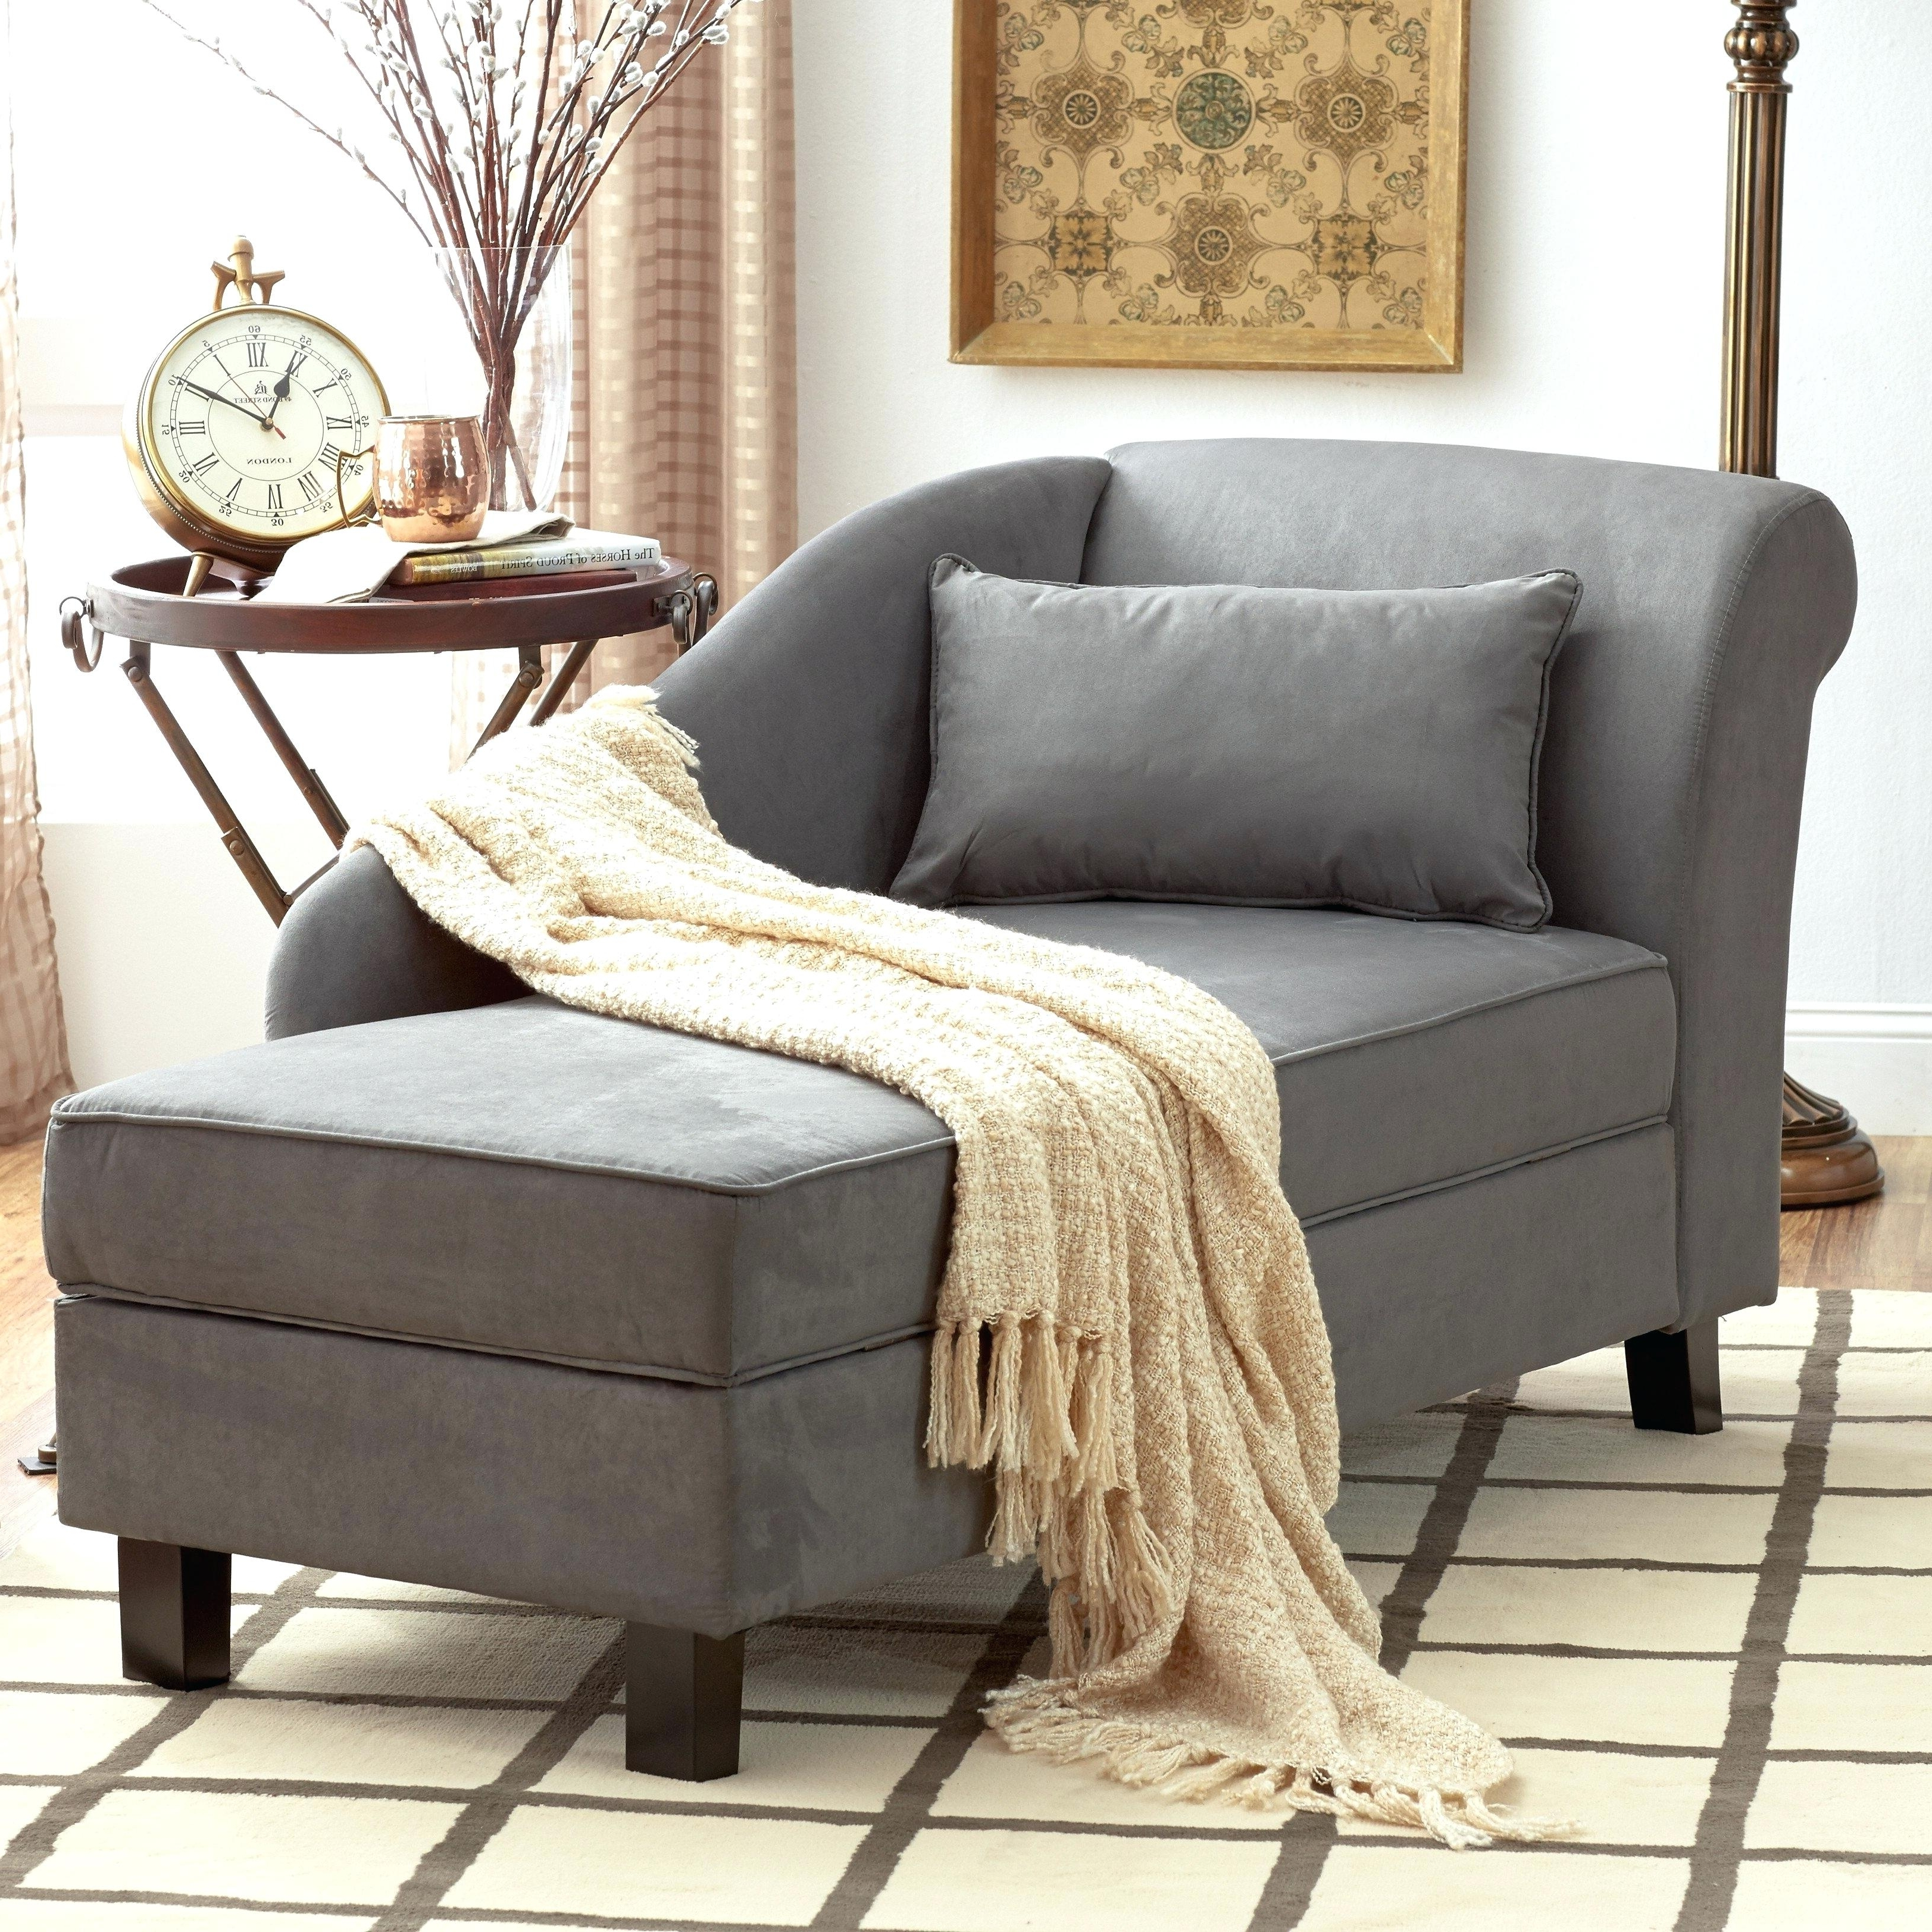 Chaise Lounge With Arms S Chair Slipcover No Indoor – Province De Pertaining To Fashionable Chaise Lounge Chairs With Arms Slipcover (View 9 of 15)